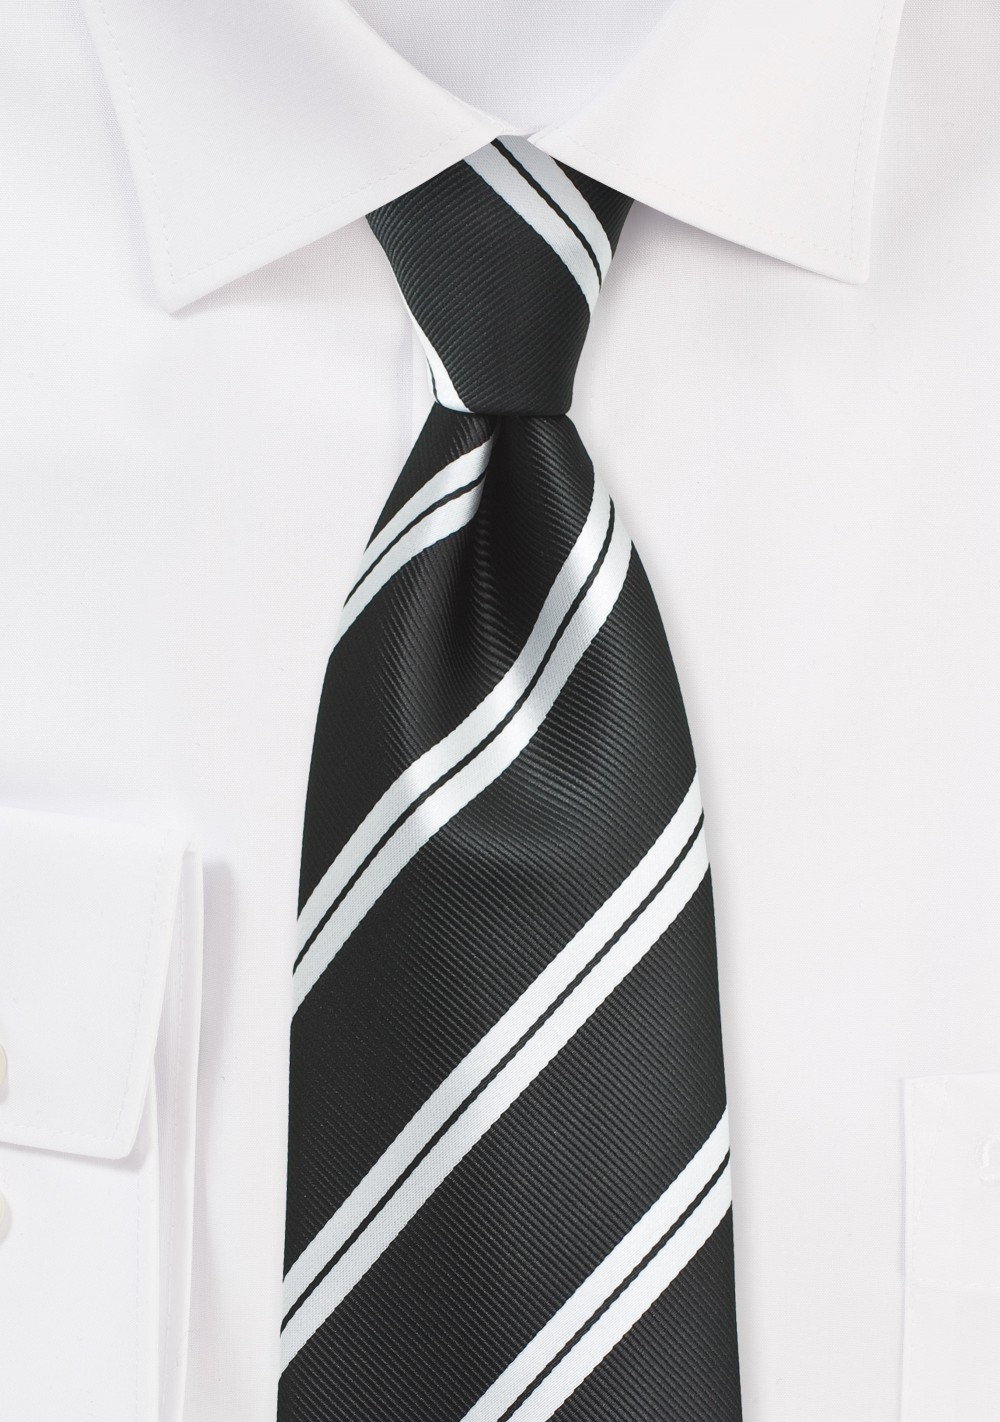 Black Repp Tie with Shiny Silver Stripes